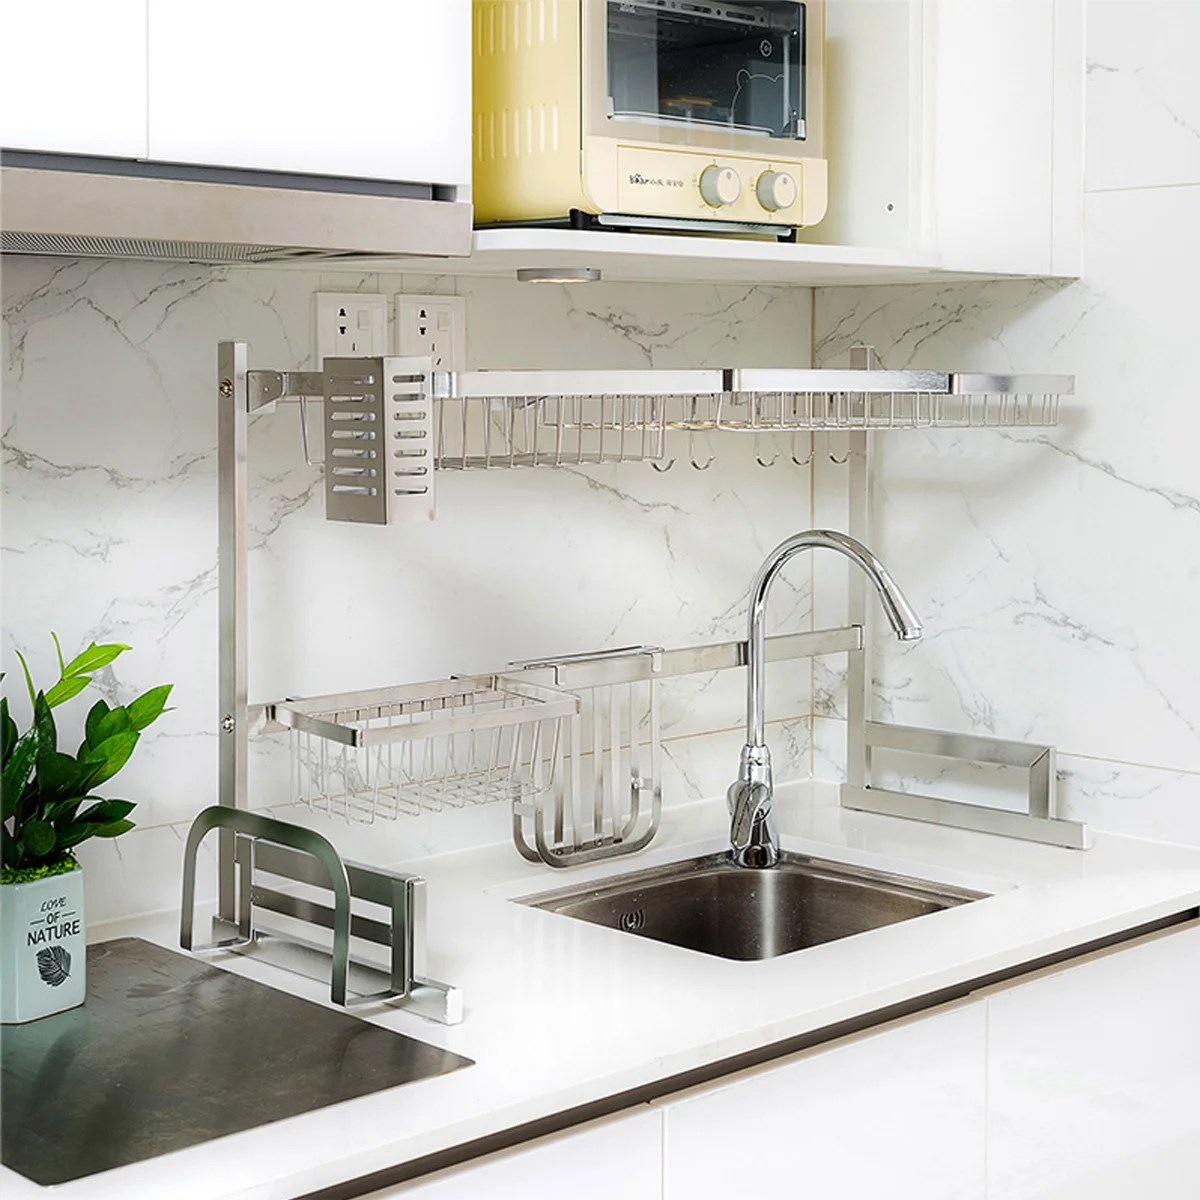 dish drying rack over sink stainless steel drainer shelf kitchen cutlery holder utensils holder display stand over the sink shelf storage rack for